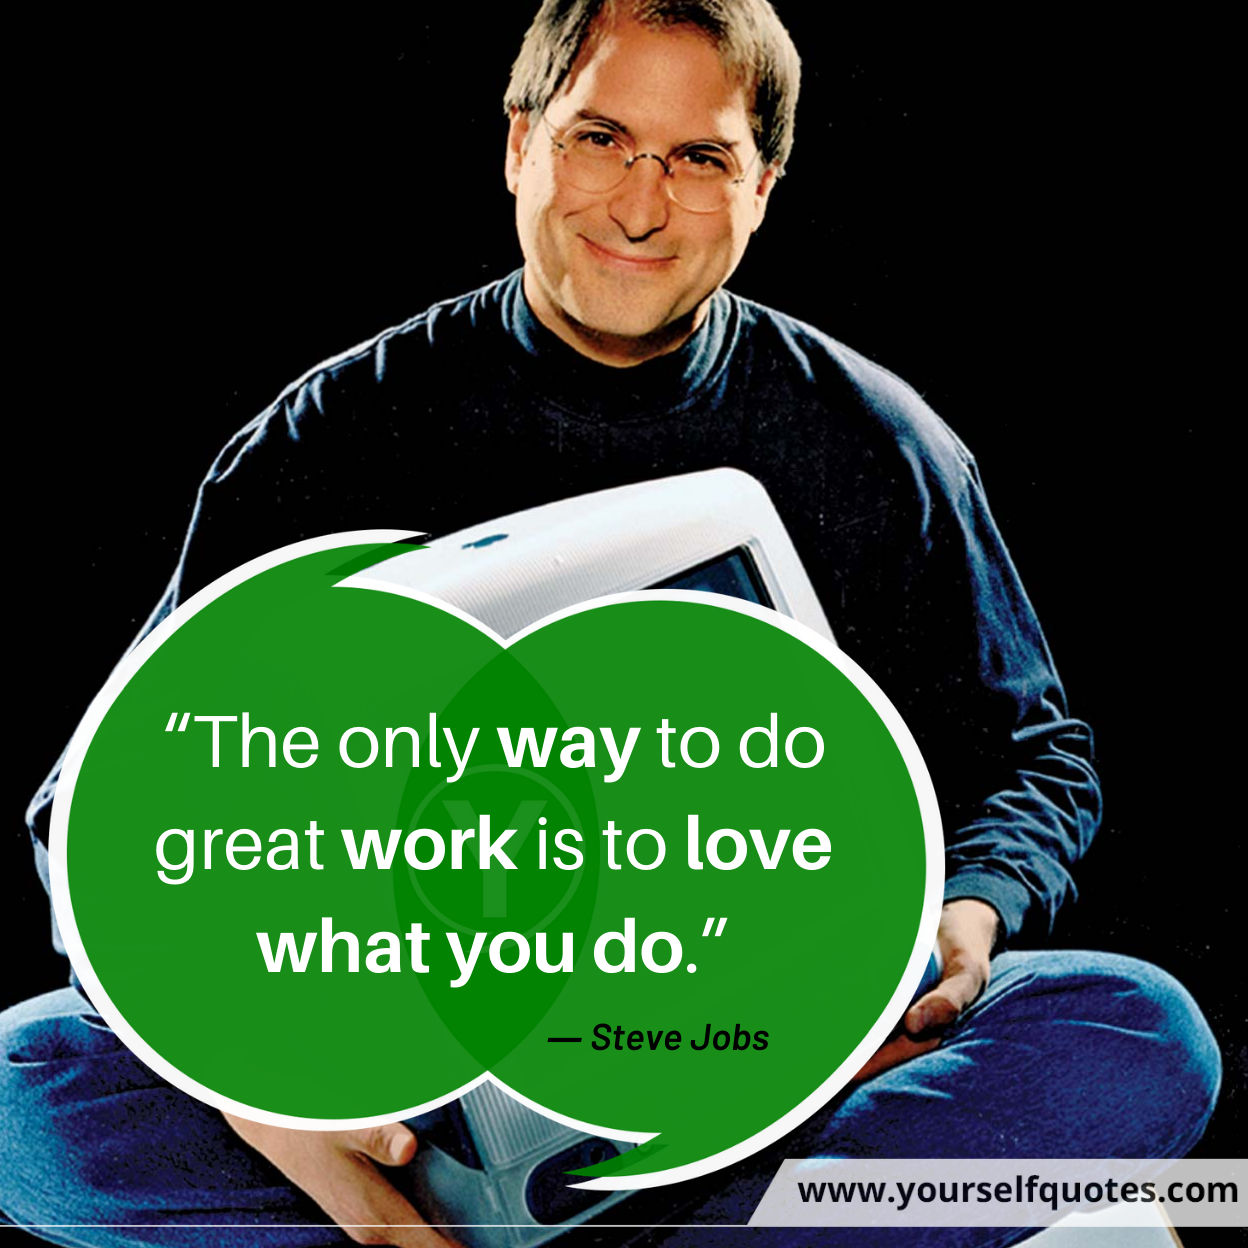 Best Steve Jobs Quotes Images